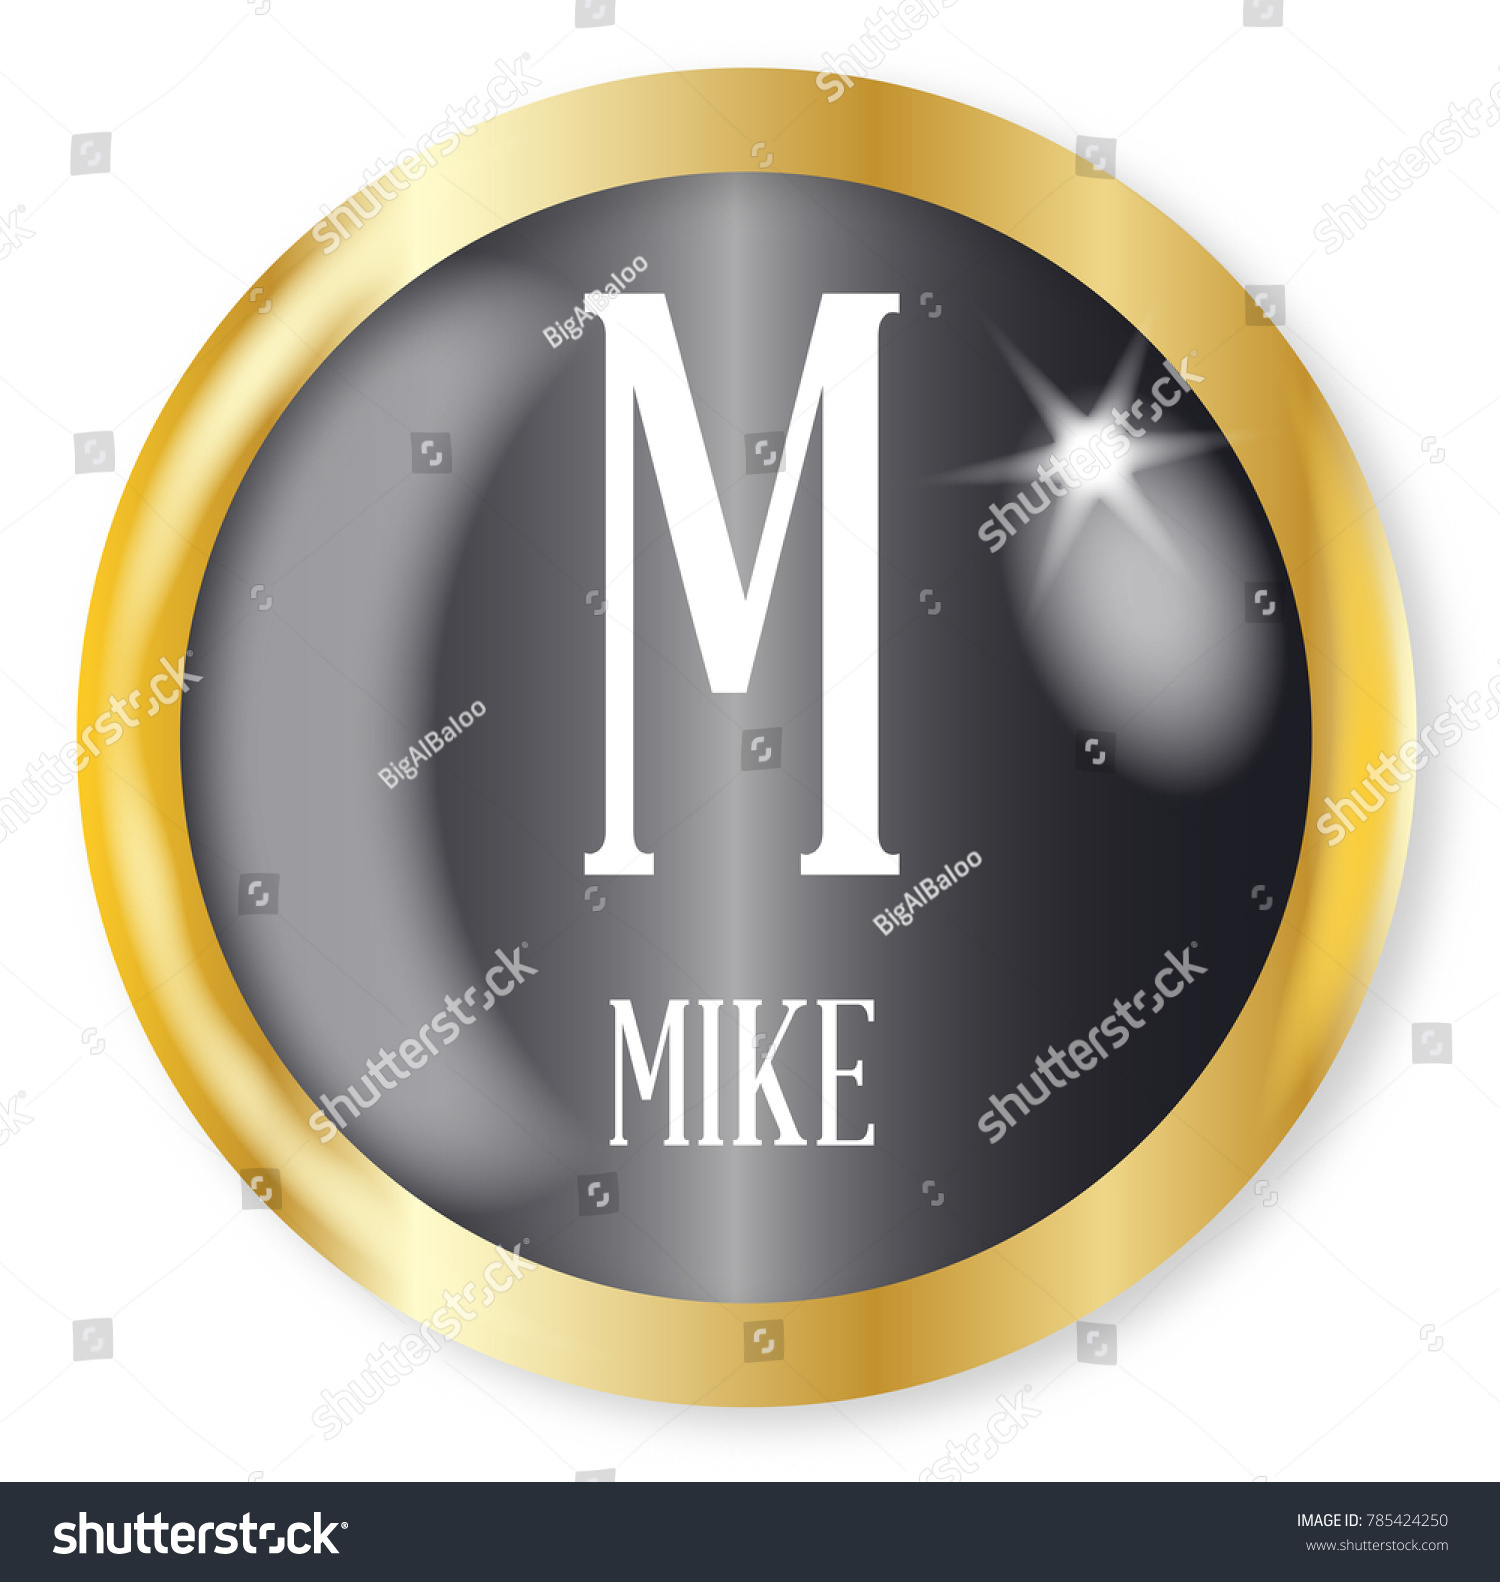 M Mike Button Nato Phonetic Alphabet Stock Illustration 785424250